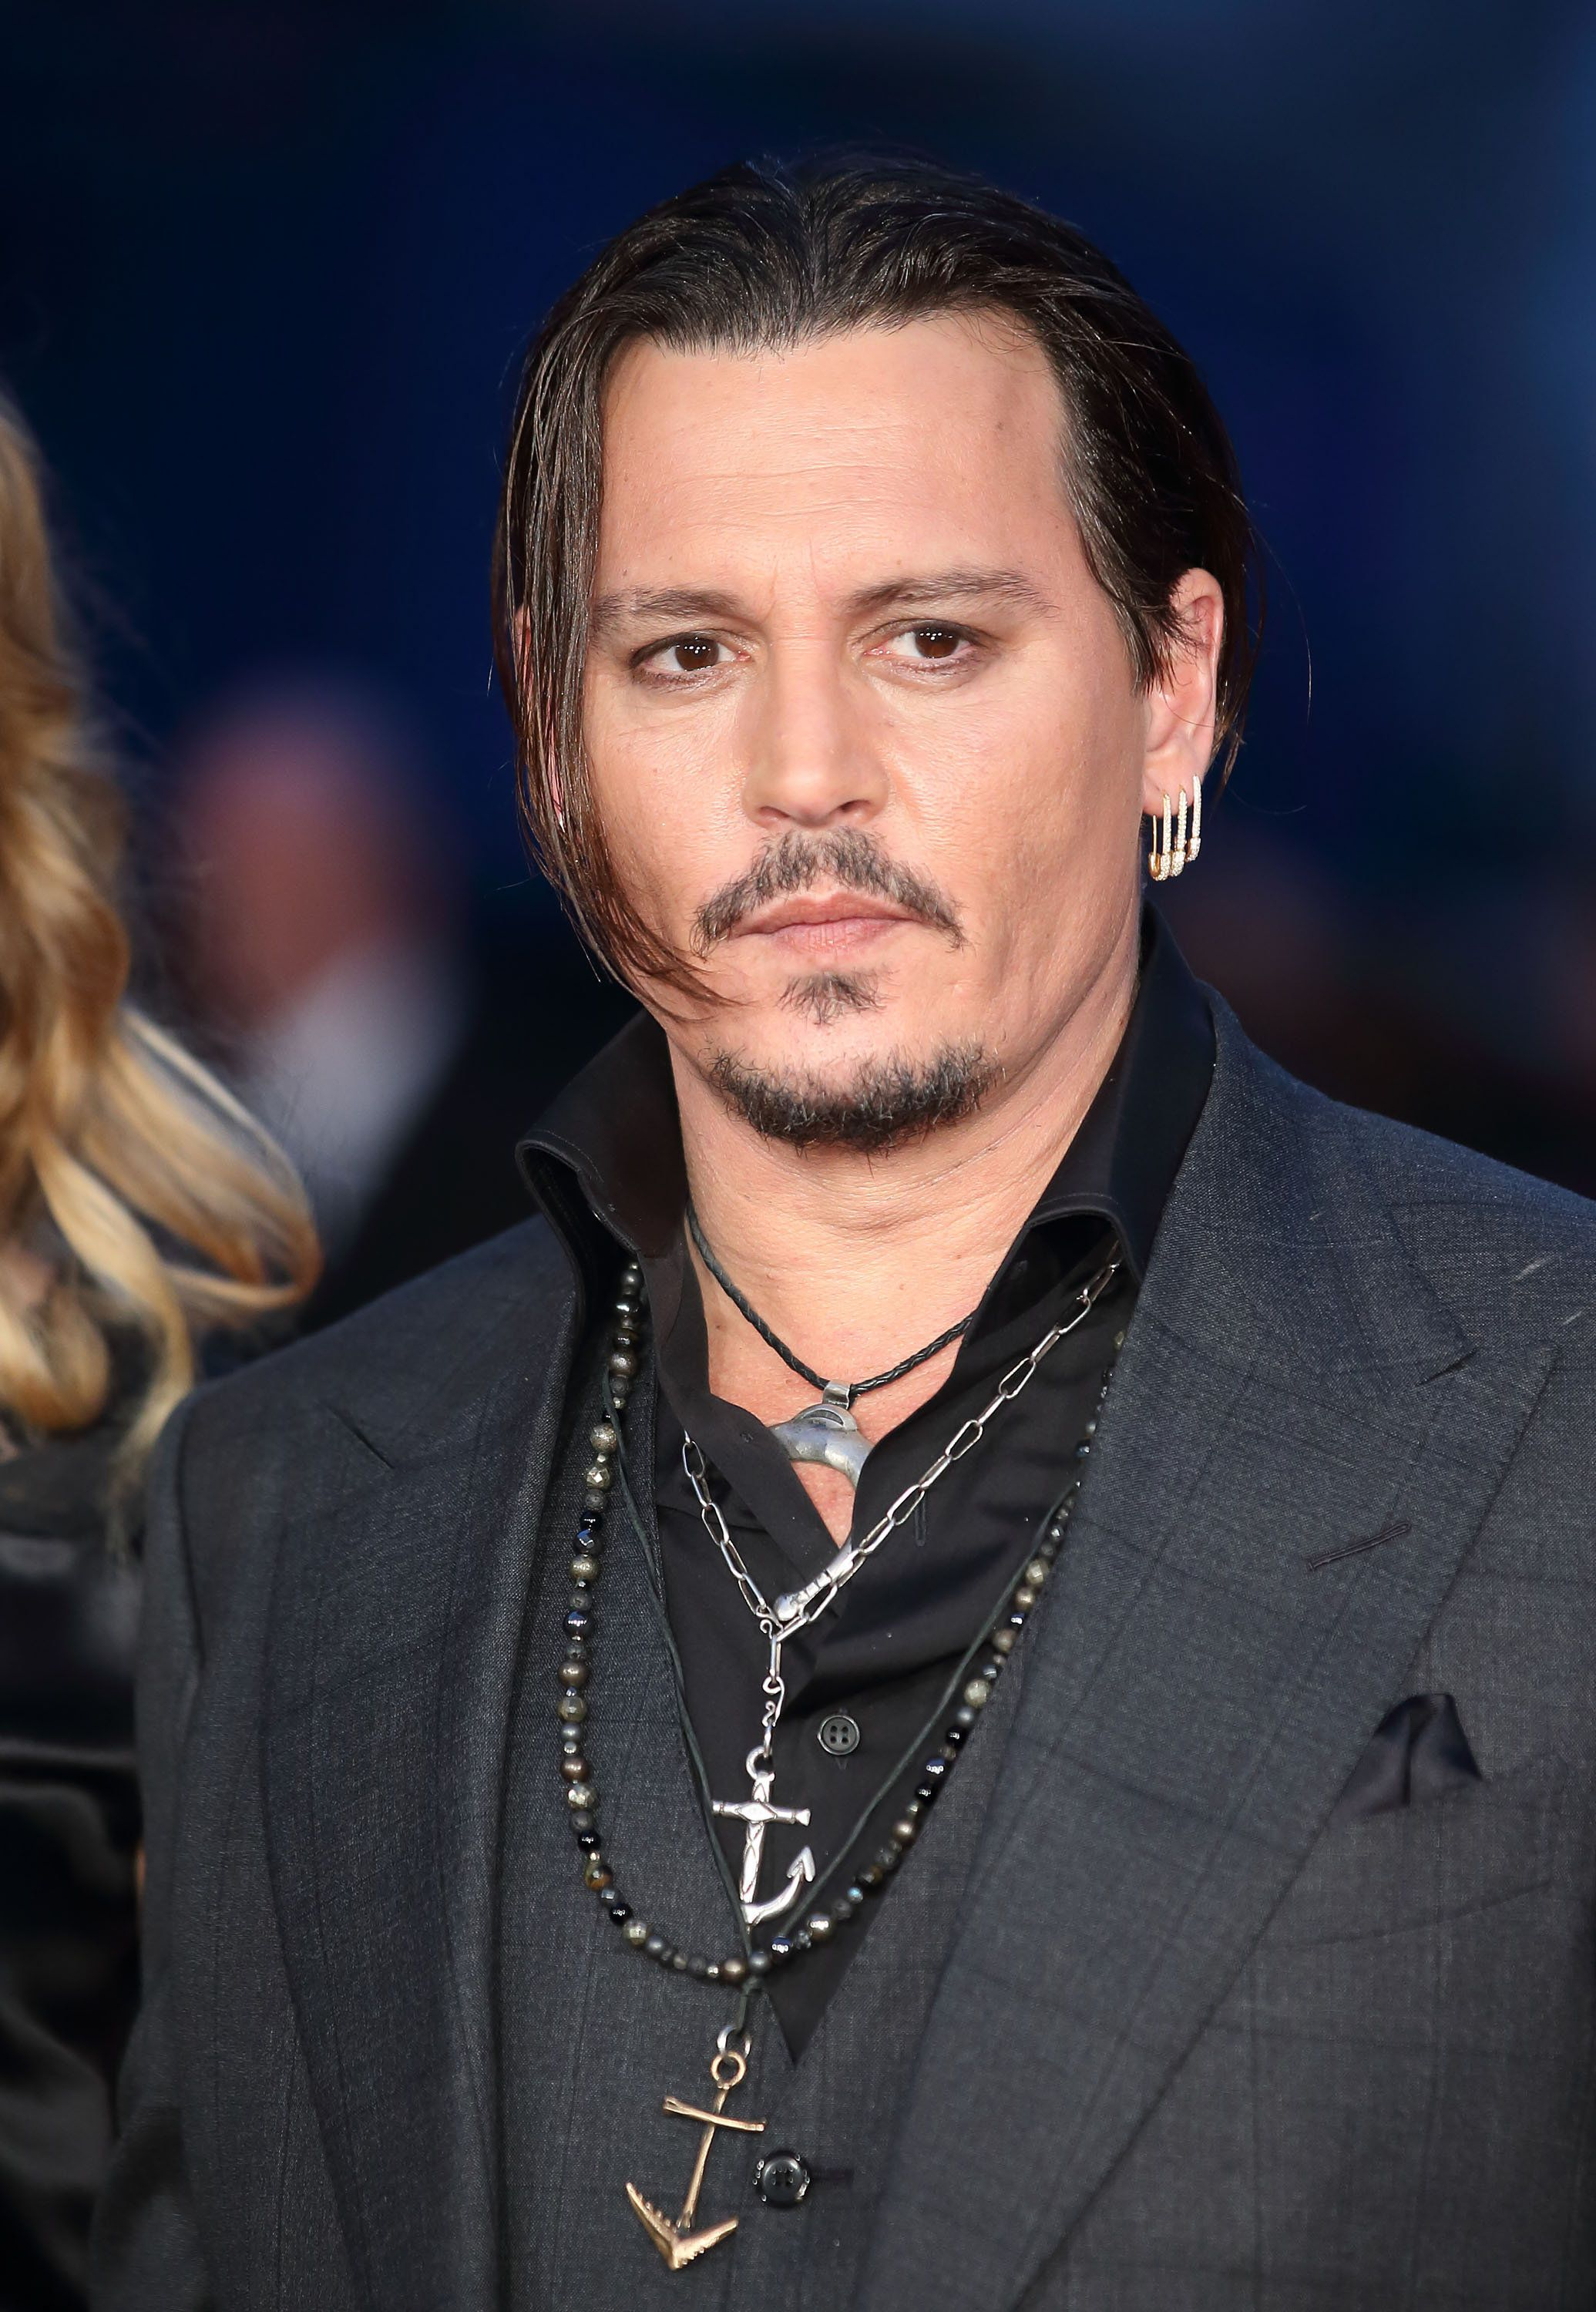 LONDON, ENGLAND - OCTOBER 11:  Johnny Depp attends a screening of 'Black Mass' during the BFI London Film Festival at Odeon Leicester Square on October 11, 2015 in London, England.  (Photo by Mike Marsland/WireImage)